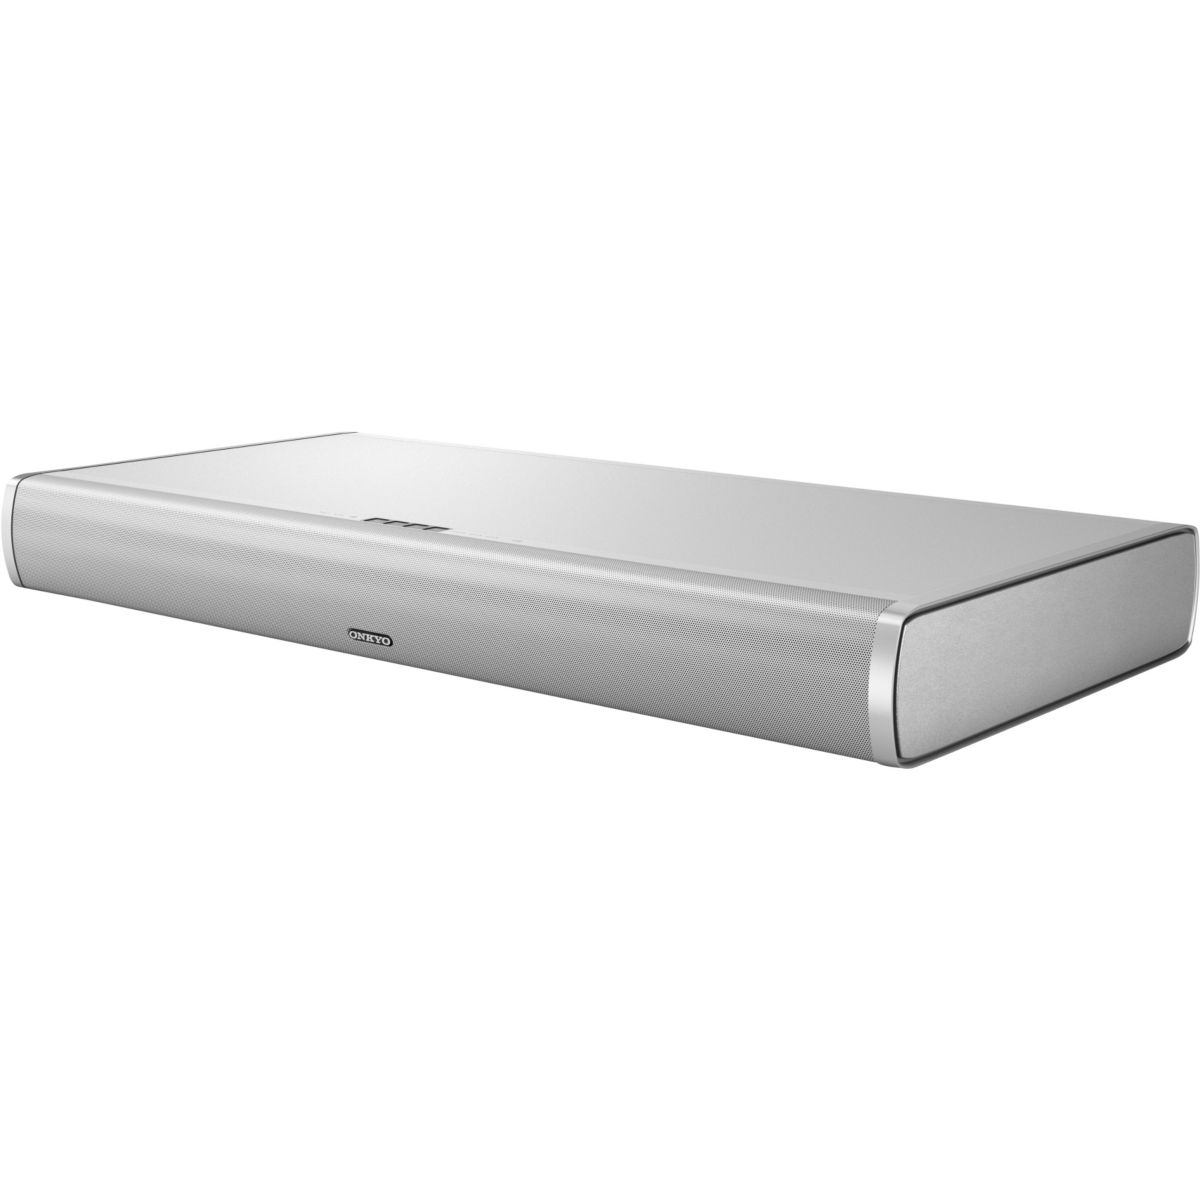 Plateau sonore ONKYO LST10 SILVER